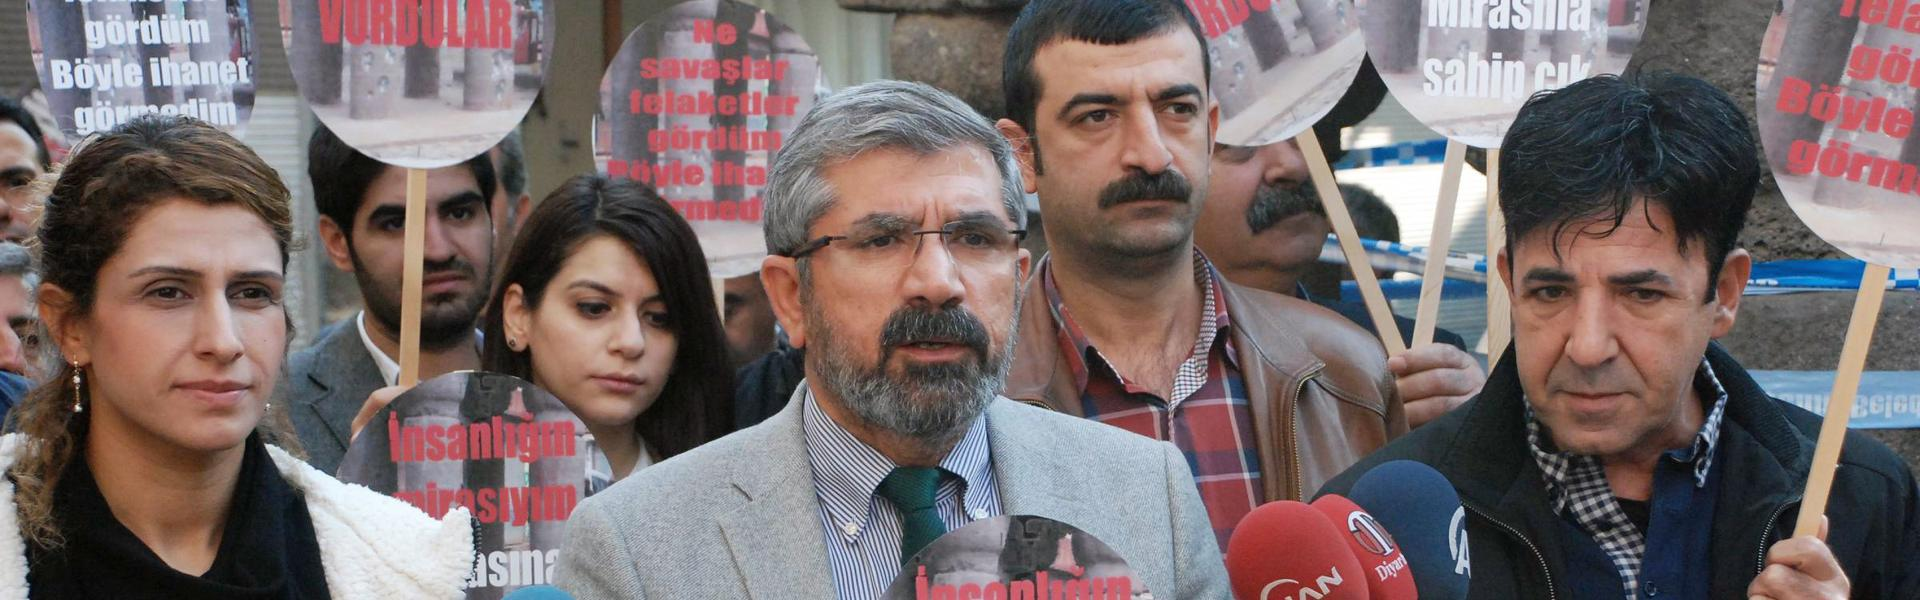 Tahir Elci, the head of Diyarbakir Bar Association, speaks to the media shortly before being killed in Diyarbakir, Turkey, Saturday, Nov. 28, 2015. He was shot while he was making a press statement in front of a historical mosques damaged during fightings between Kurdish rebels and security forces. (IHA agency via AP)